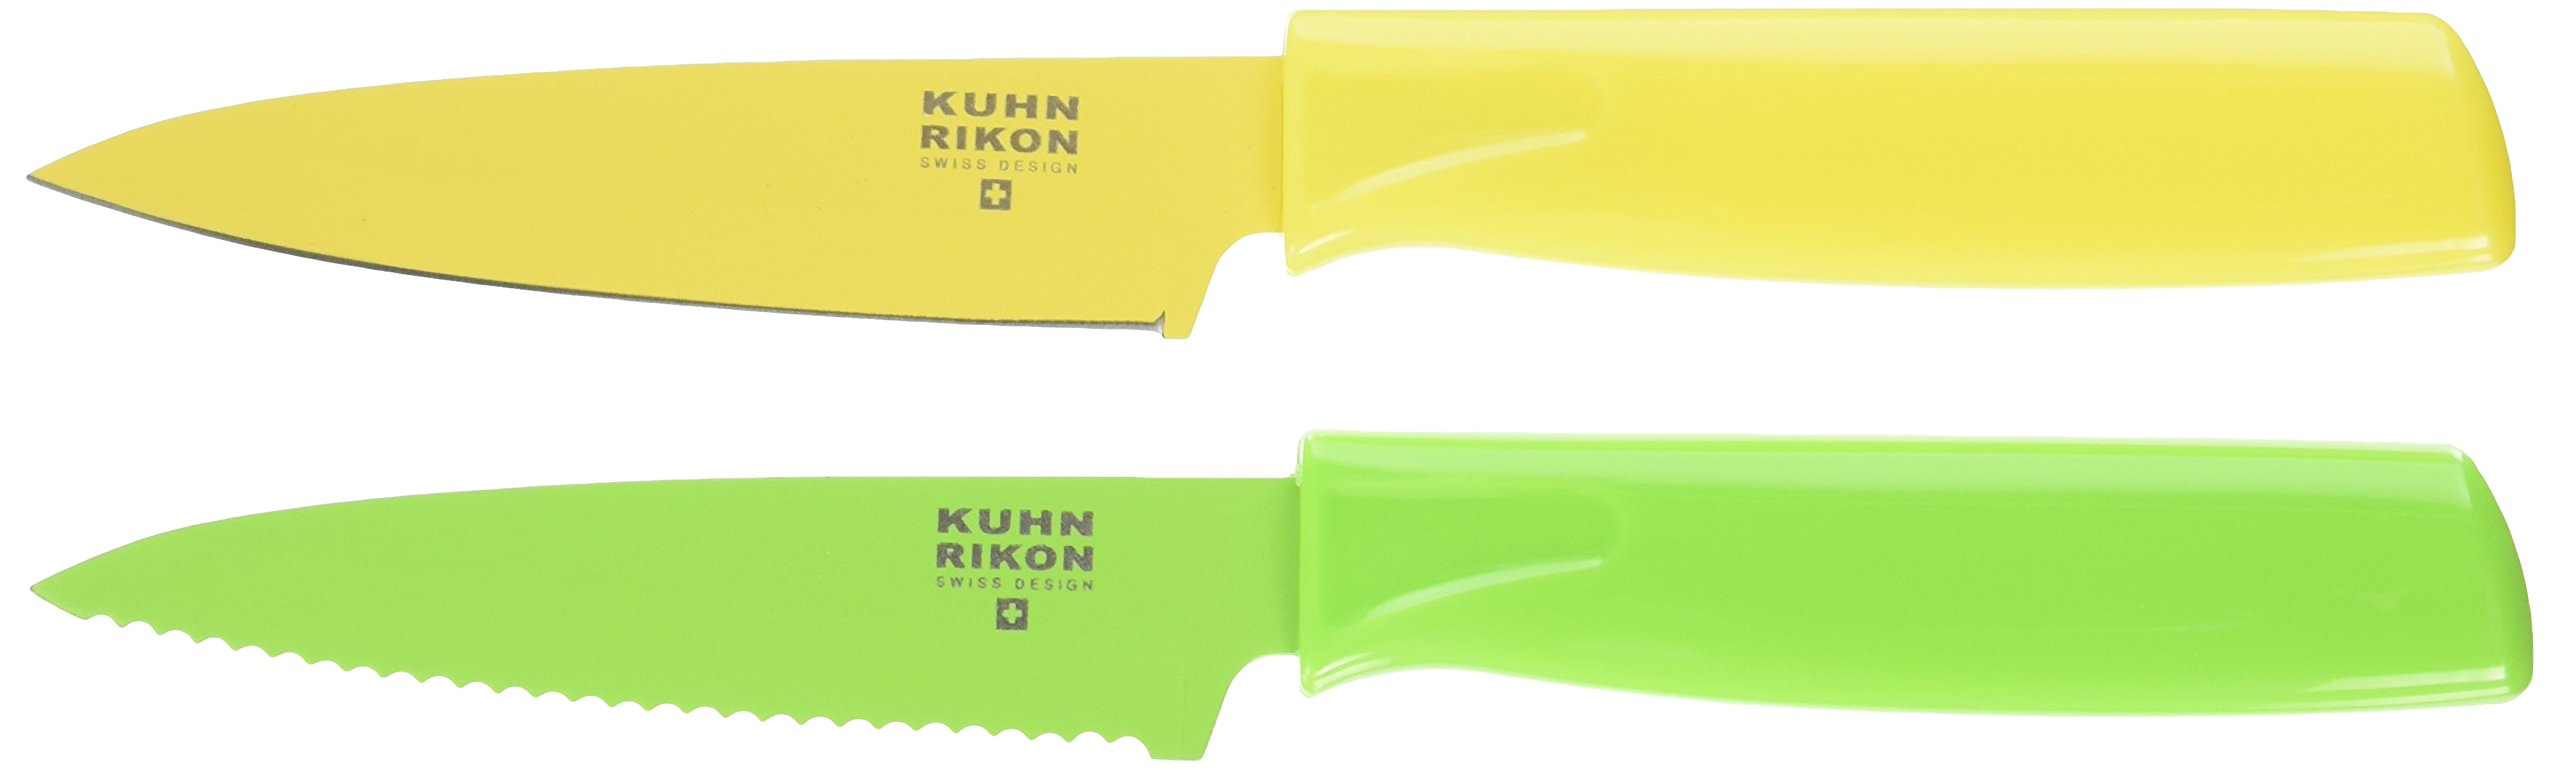 Kuhn Rikon 4-Inch Nonstick Colori Paring Knife, Set of 2